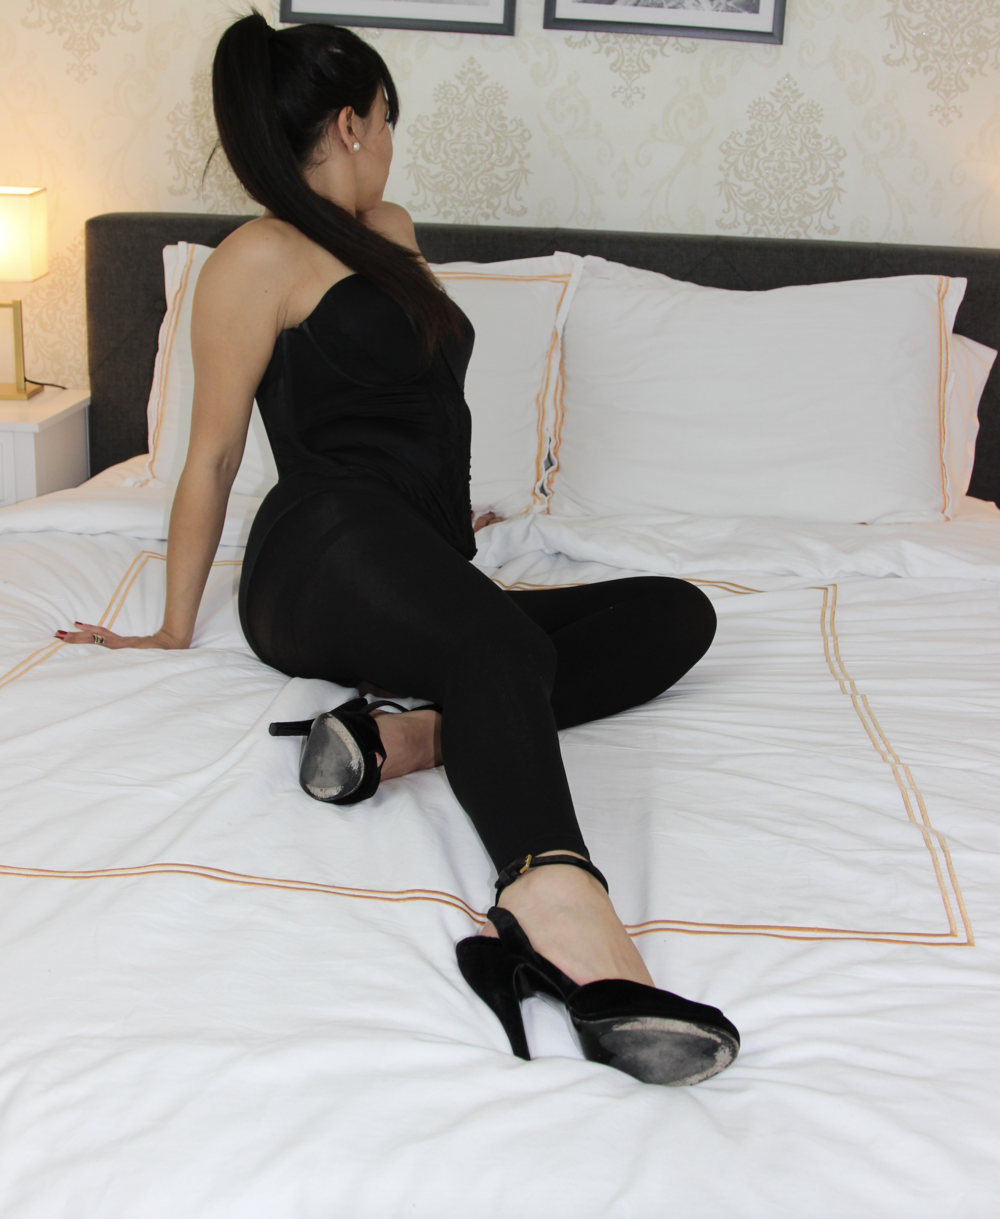 millEy milfshake - Adorable, Little Milley Milkshake is a Beautiful Latina with a warm, endearing personality and Mouth watering SIZE 5 FEET. Milley has perfectly Polished Toes, SUCKulent Soles that love being Caressed, Tickled, Licked and Sniffed!!!!!!!